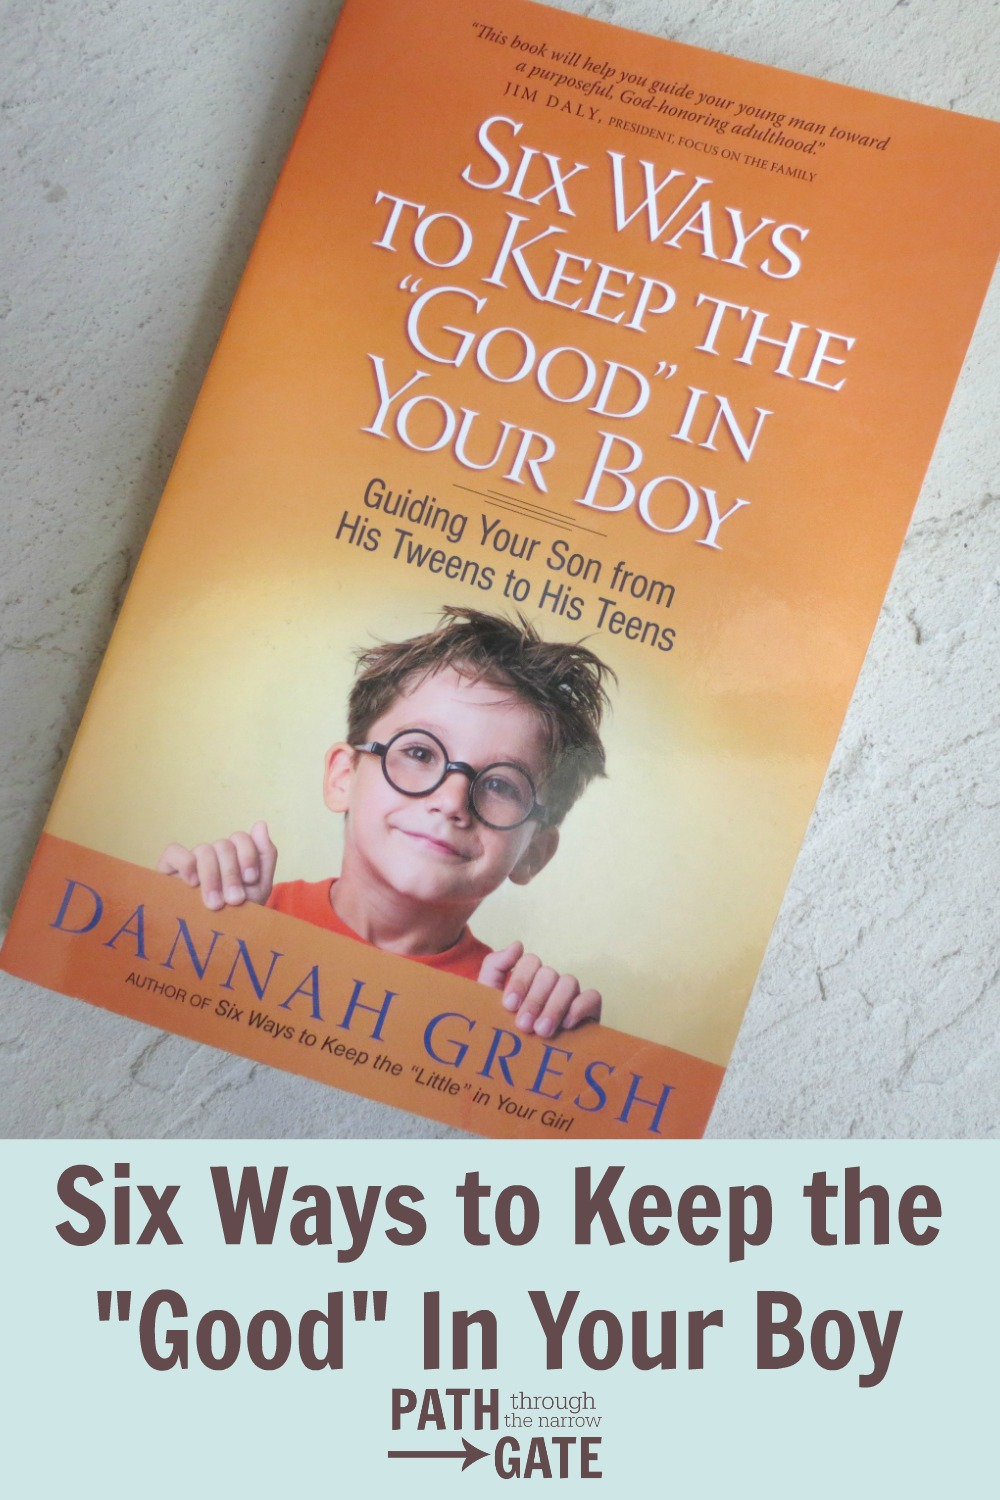 In Six Ways to Keep the Good in Your Boy, author Dannah Gresh identifies the dangers boys face, and offers hope and help in overcoming these dangers.